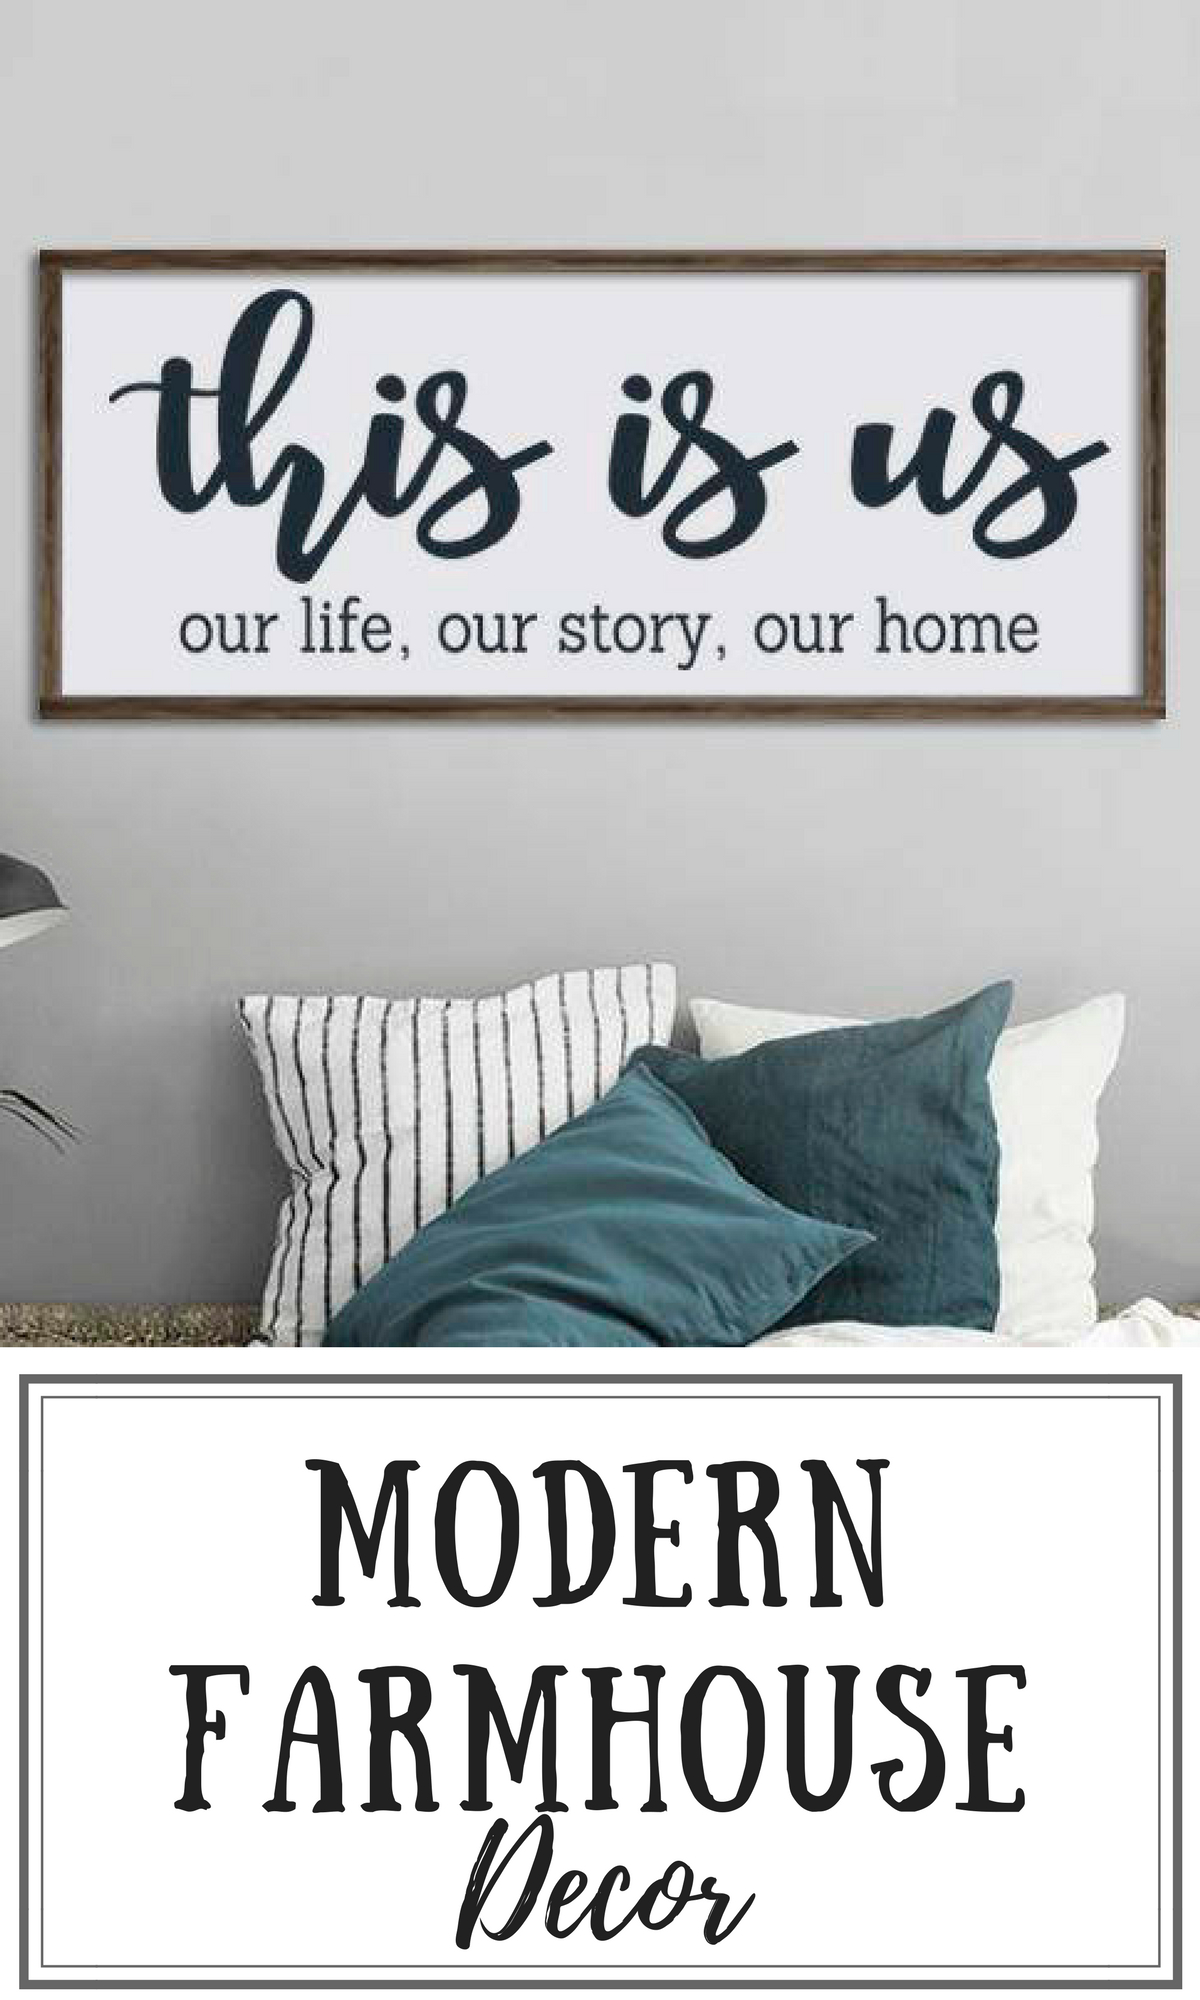 This Is Us | Home Decor | Farmhouse Sign | Gallery Wall Inside This Is Us Wall Decor (View 3 of 30)